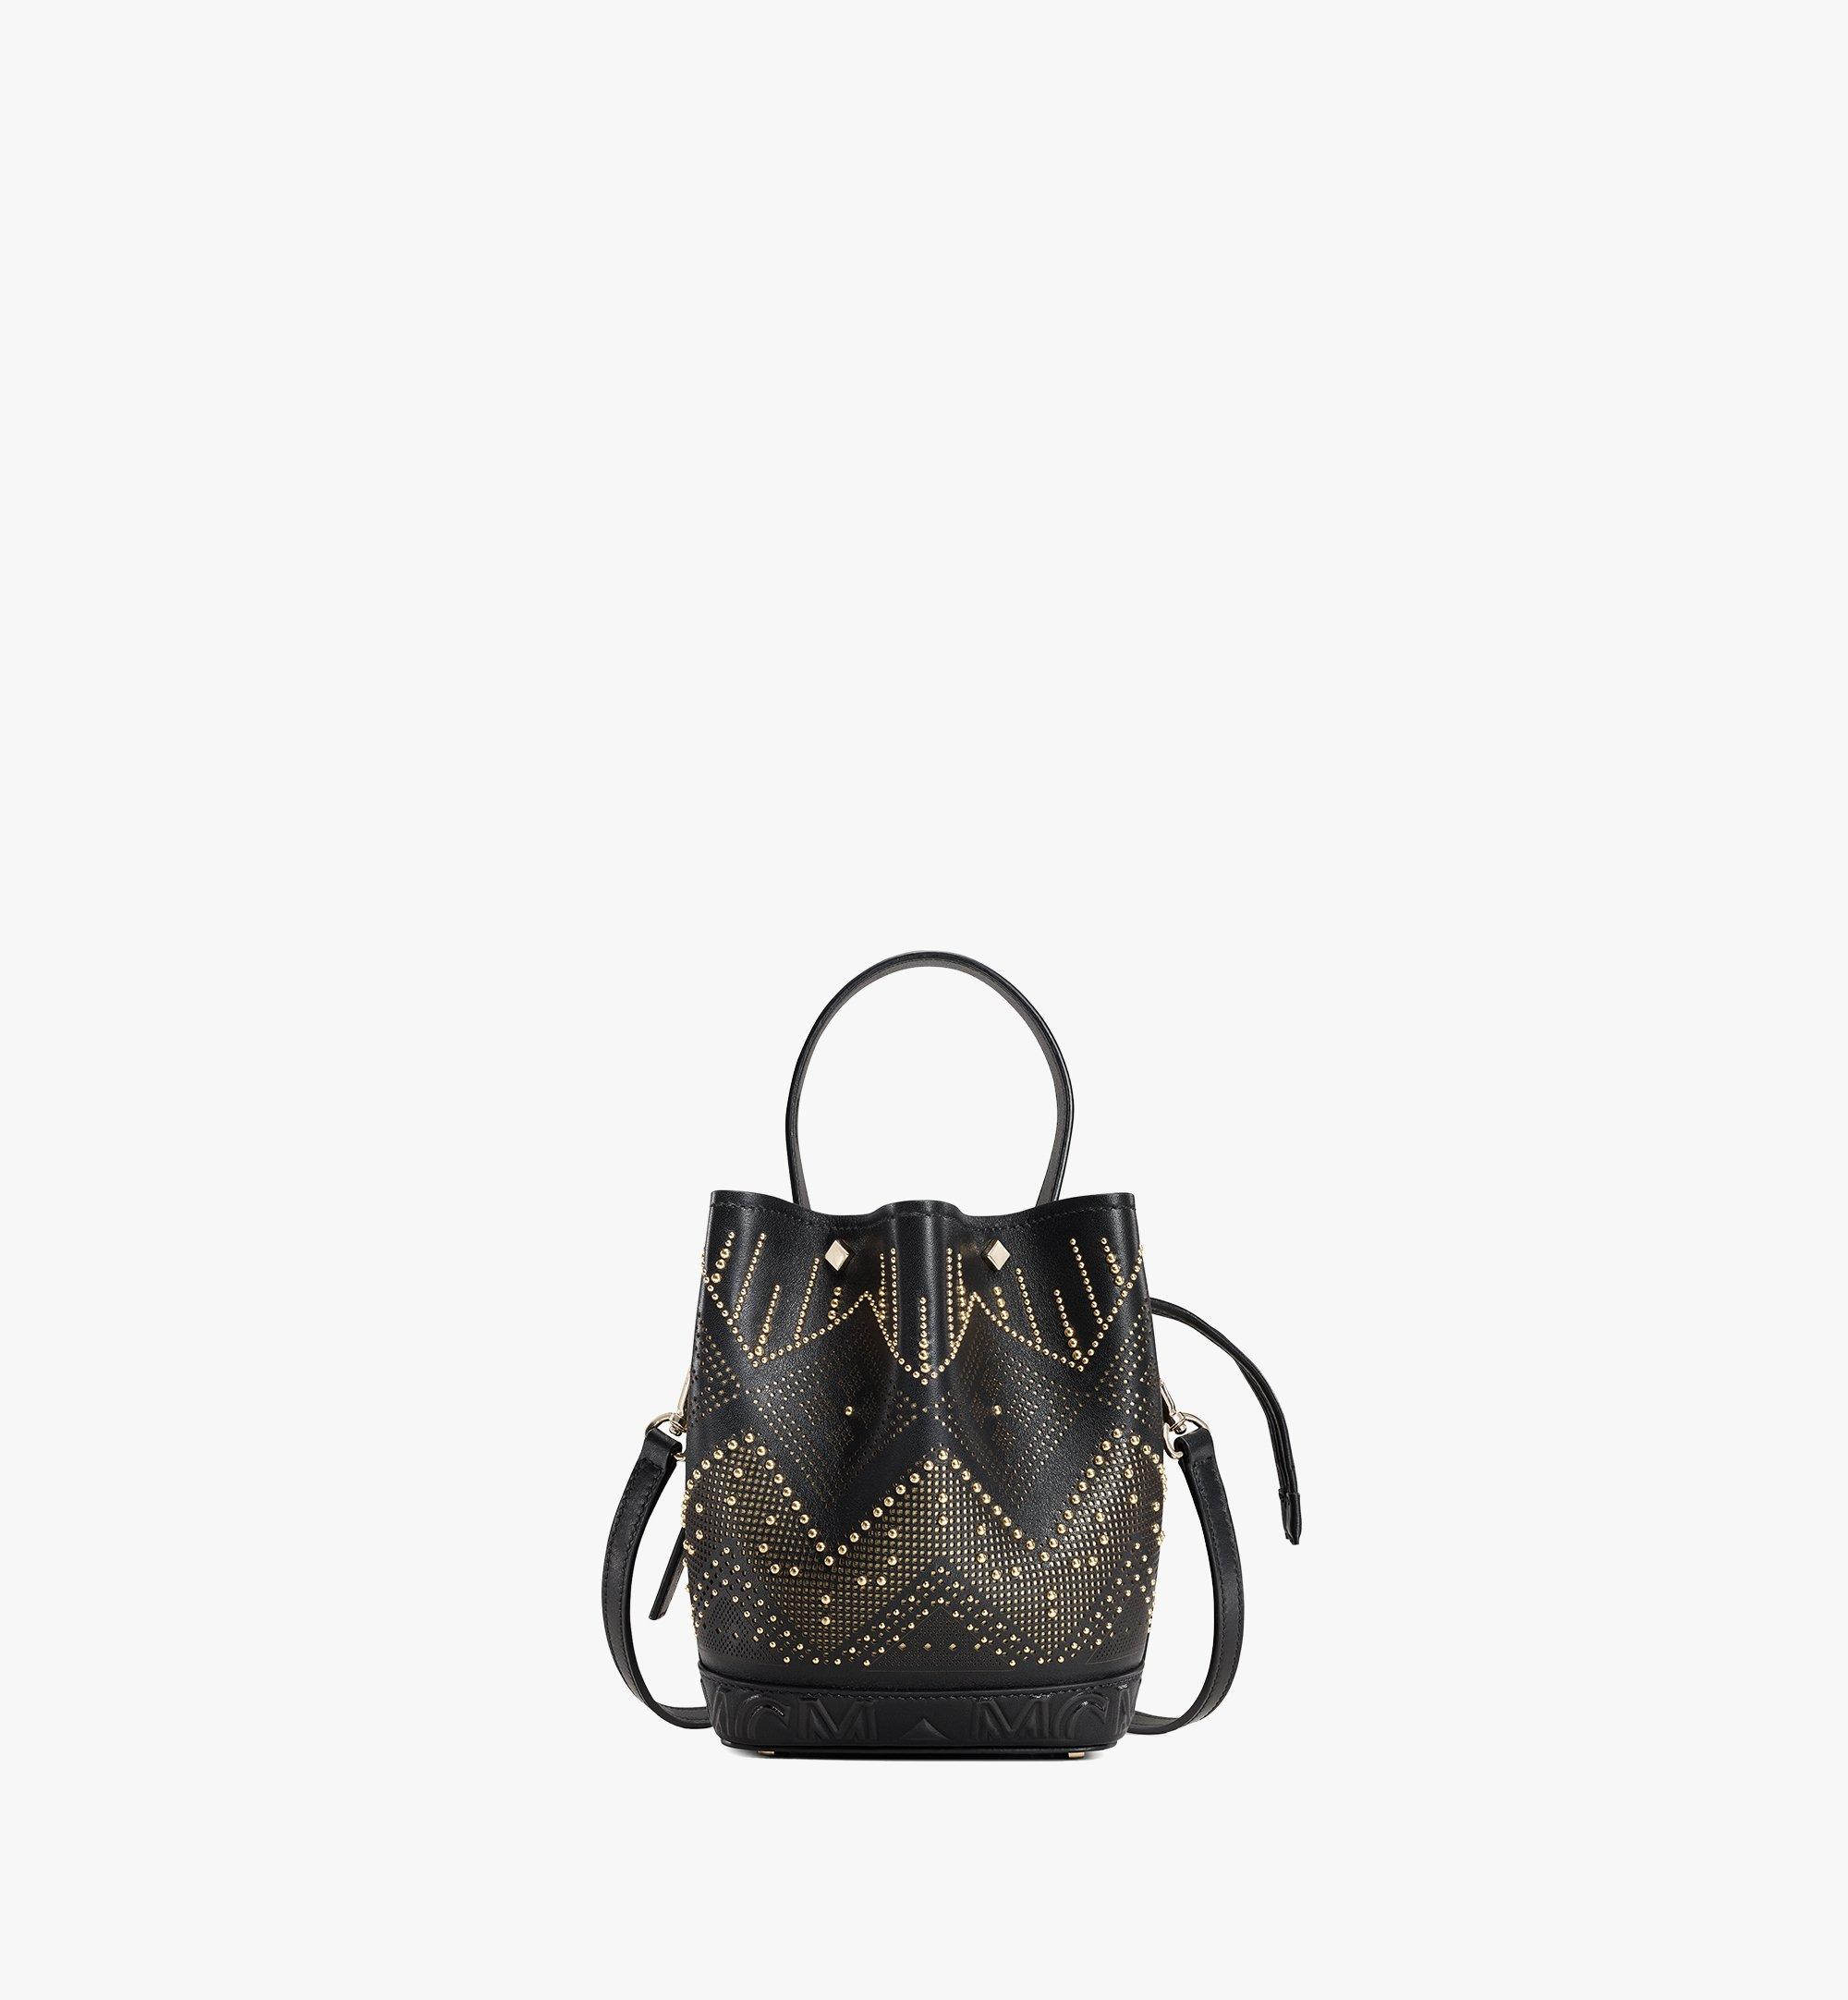 MCM Milano Lux Drawstring Bag in Studded Leather Black MWDAADA04BK001 Alternate View 1